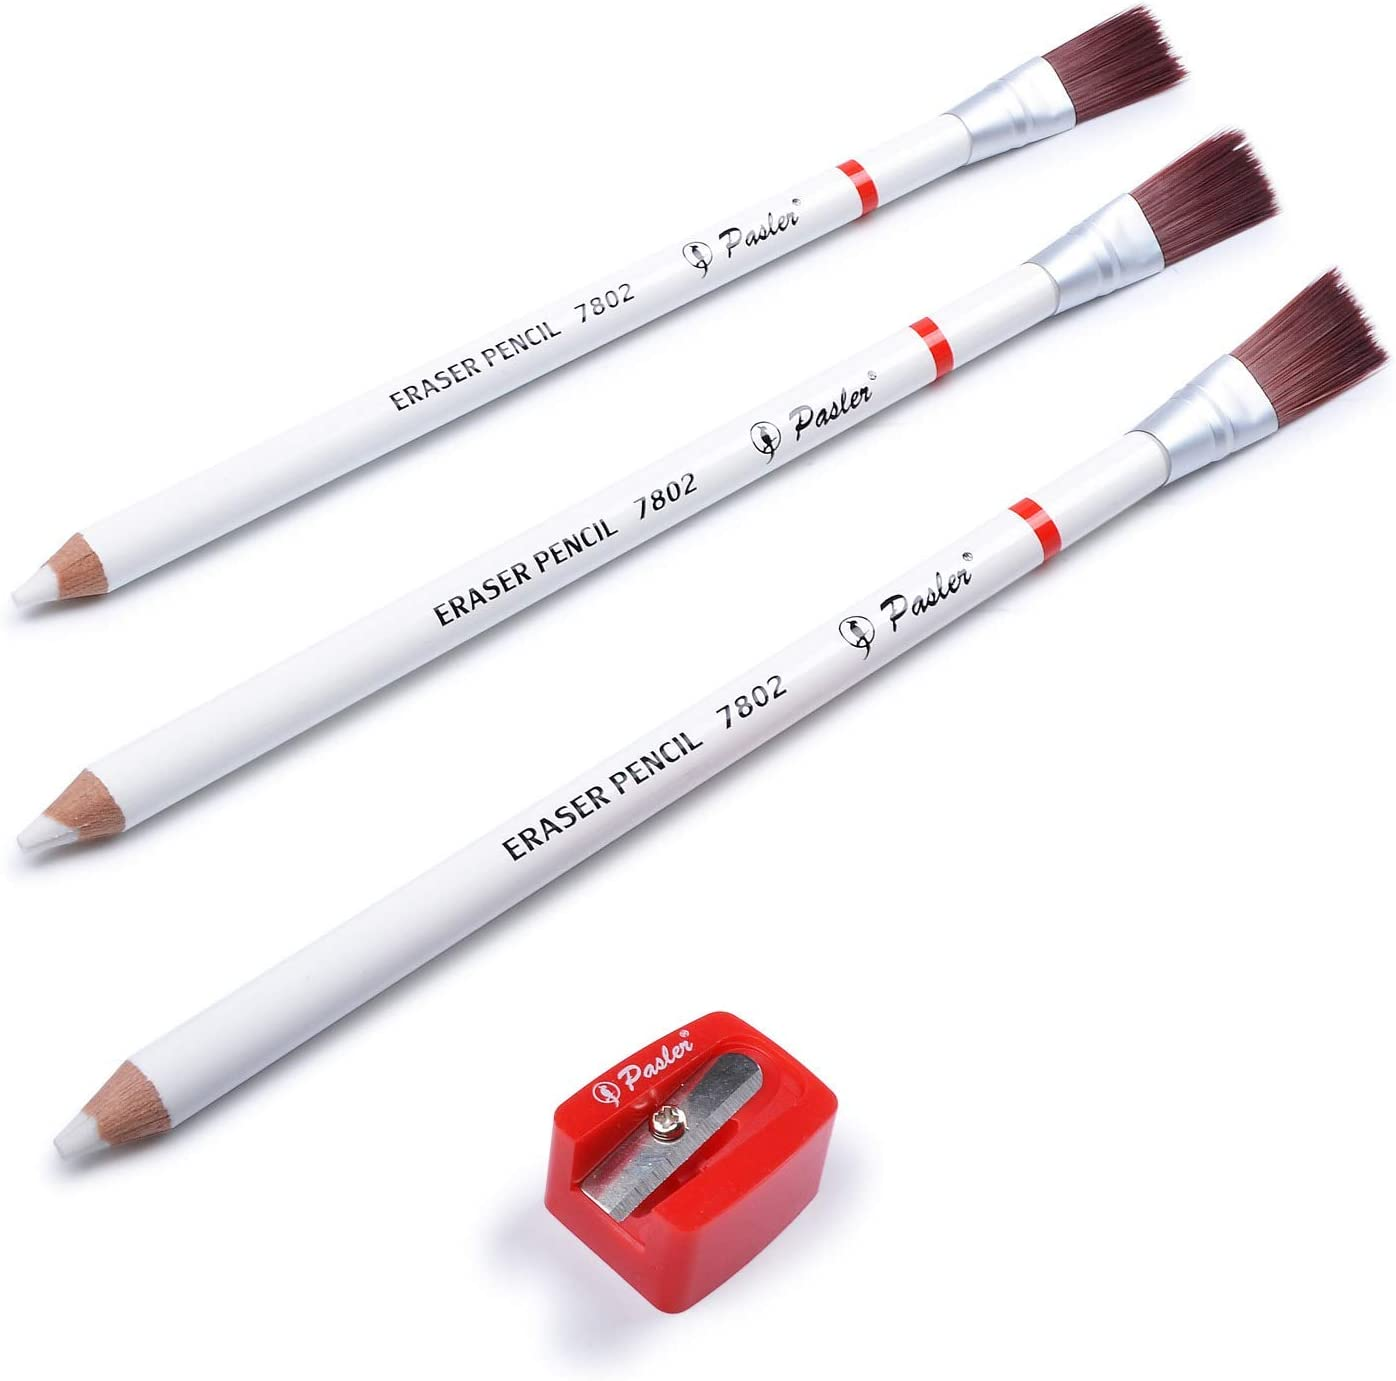 Arlington Mall Pasler Eraser pencils Selling 7802 with drawing perfection Pencil